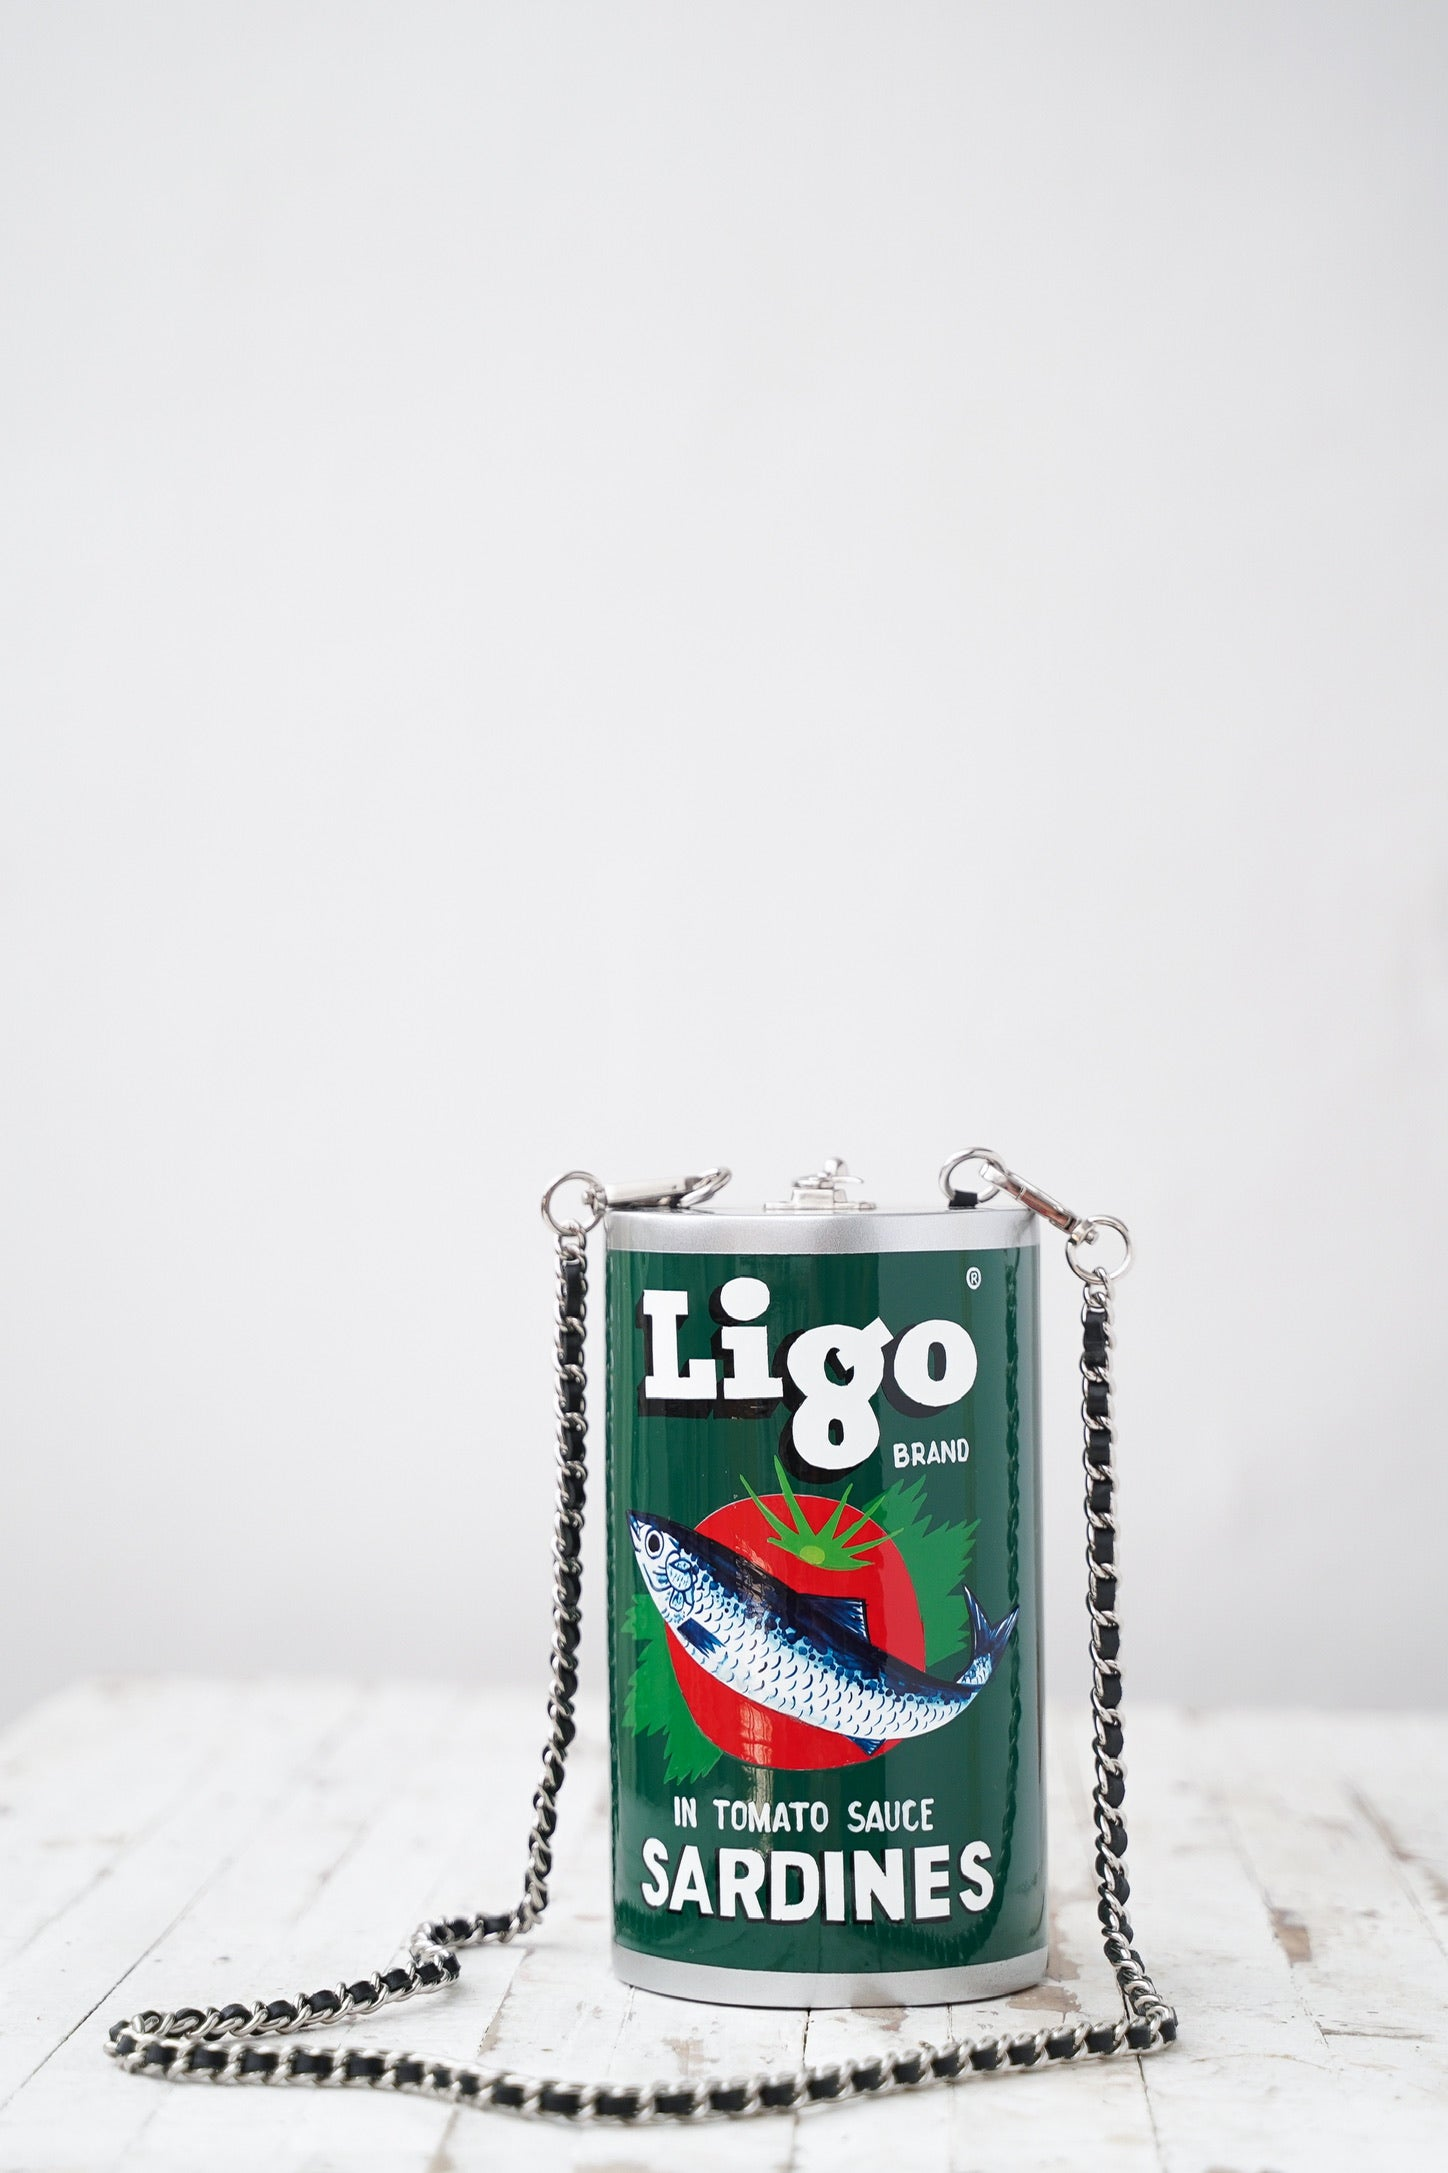 Ligo Sardines Bag Limited Edition